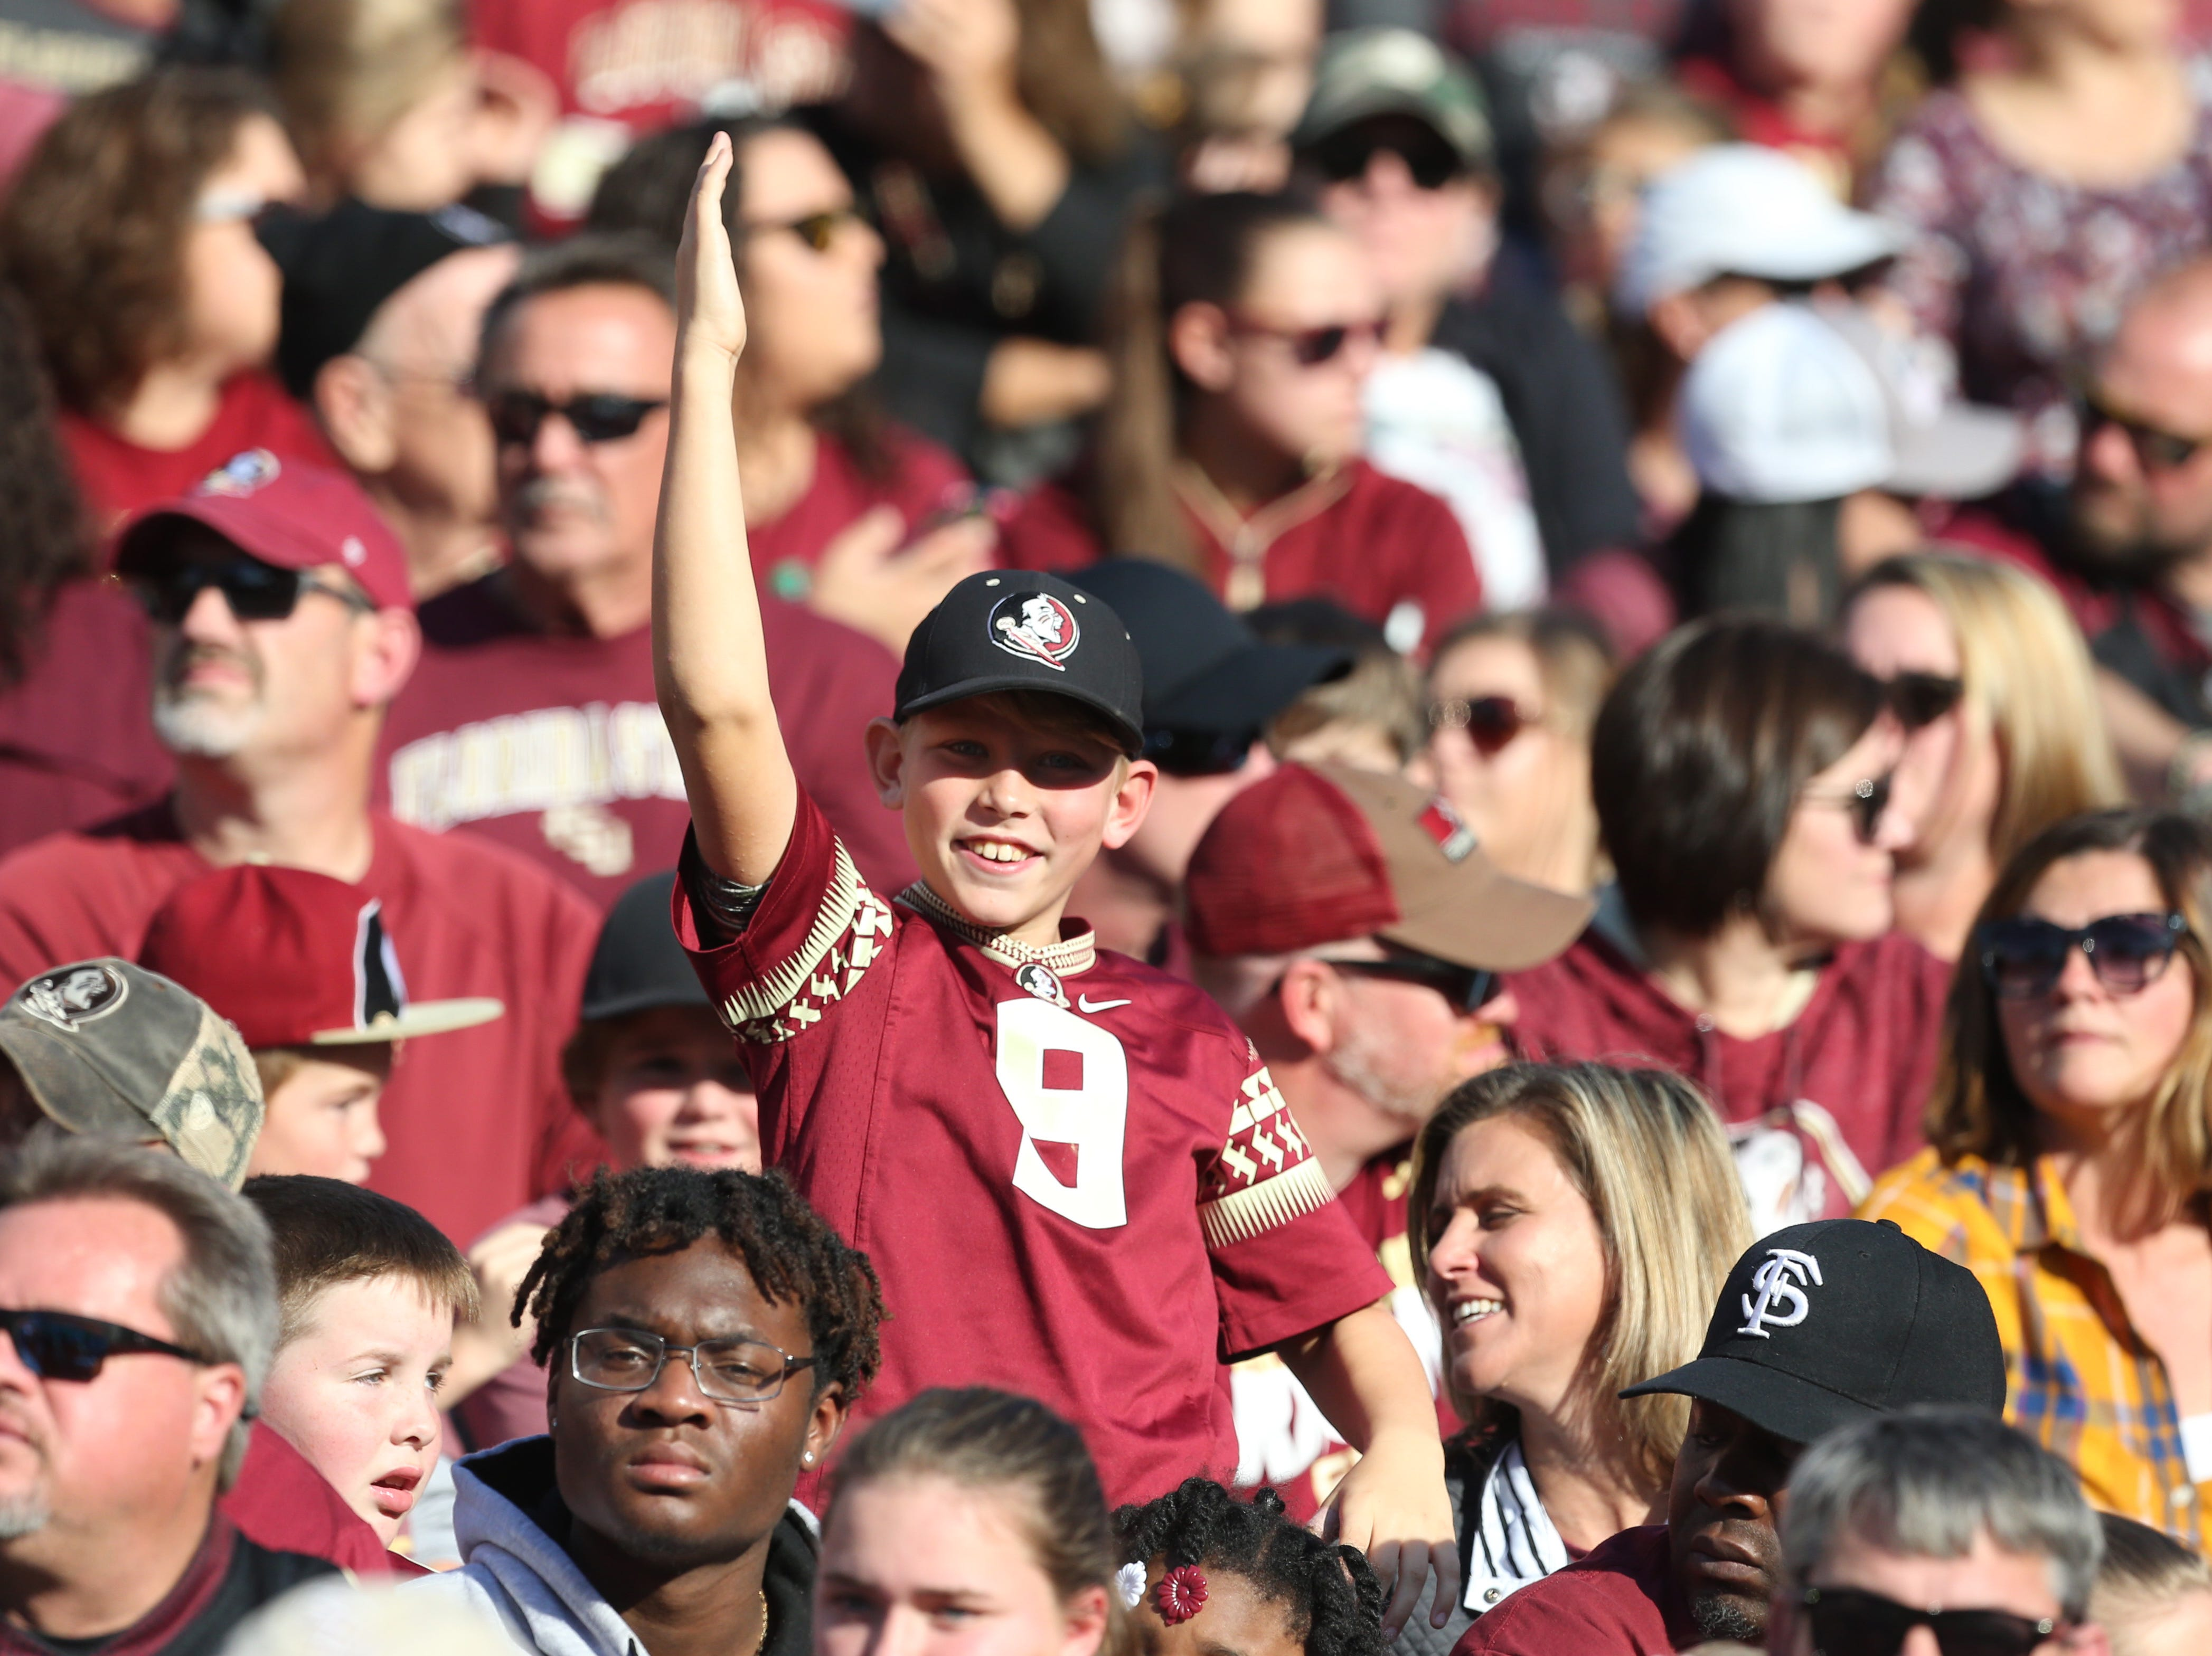 Fans cheer on the Seminoles as the Florida State Seminoles face off against the Boston College Eagles at Doak S. Campbell Stadium, Saturday, Nov. 17, 2018.